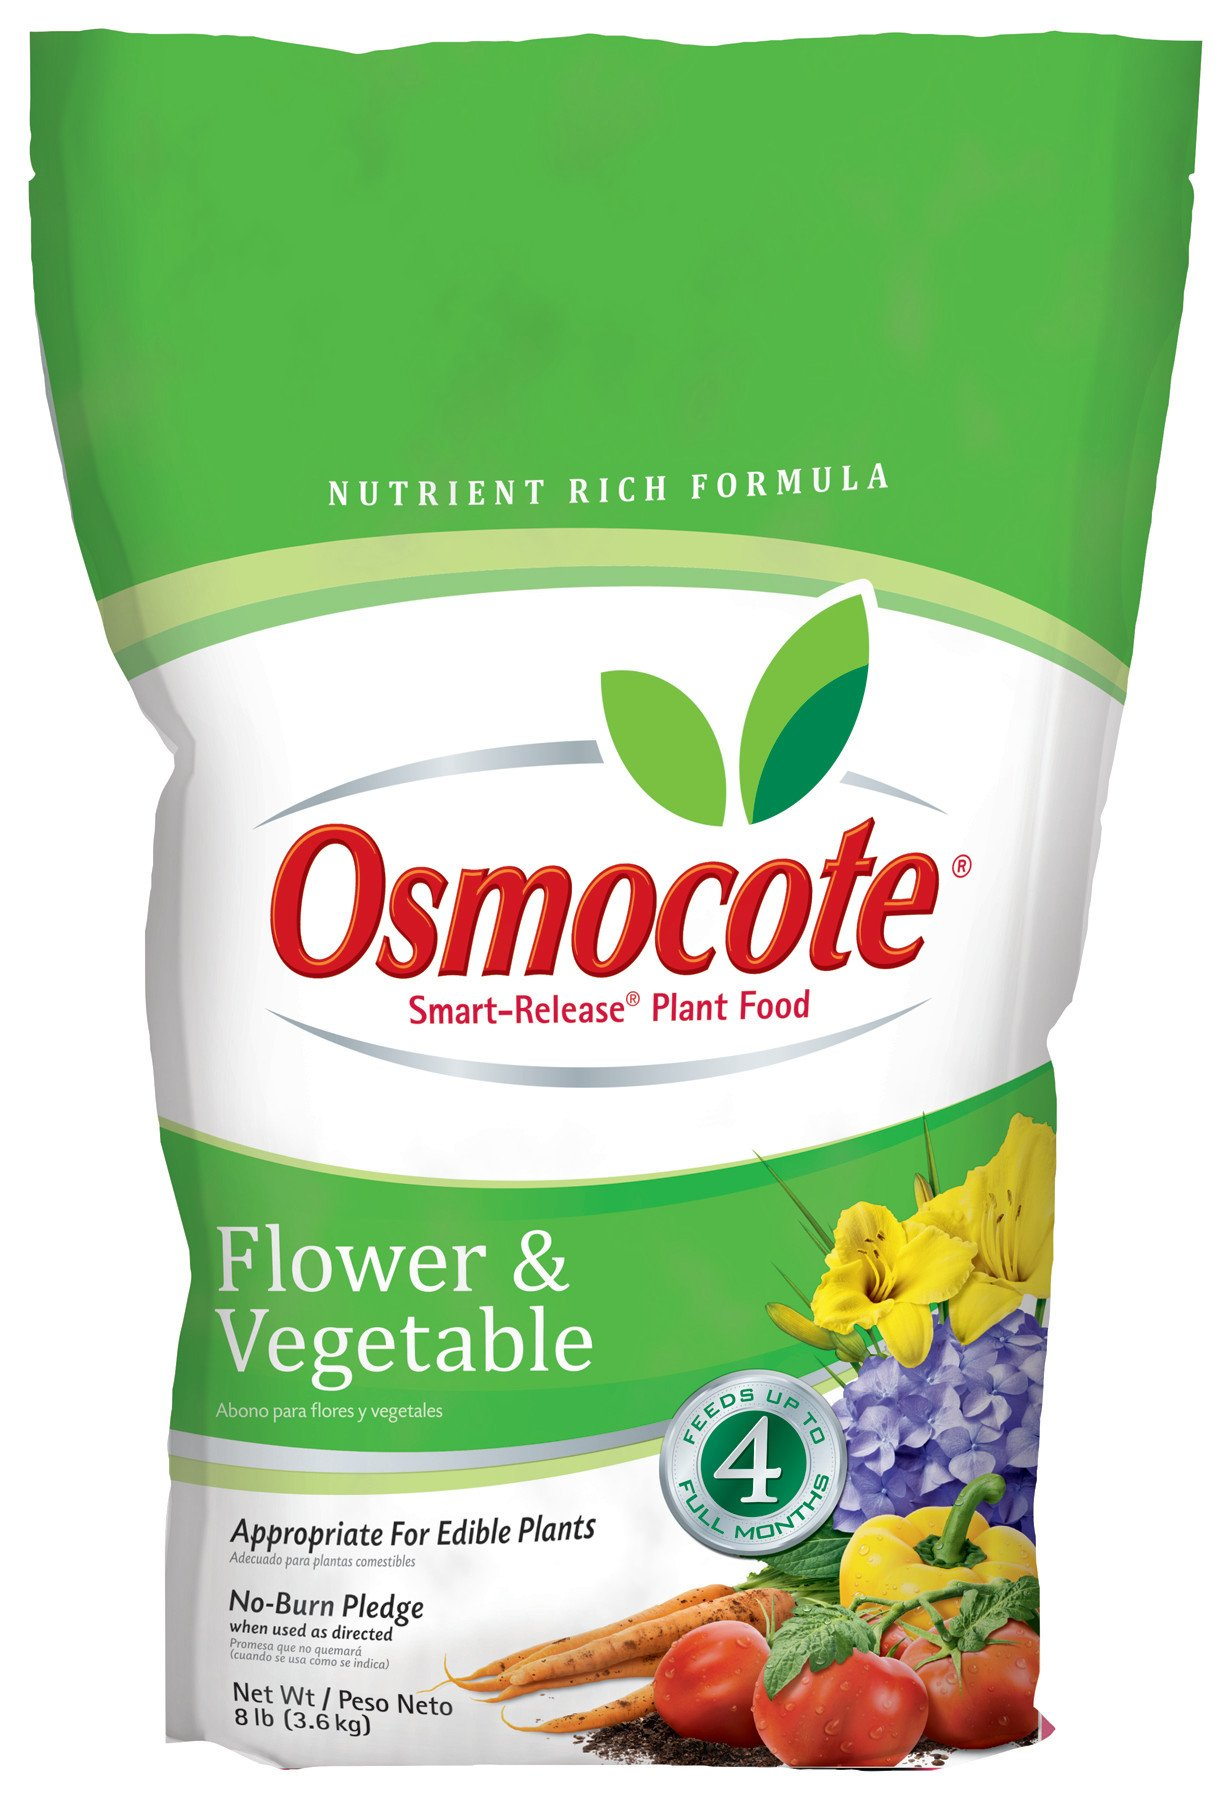 Osmocote Smart-Release Plant Food Flower & Vegetable, 8 lbs by Osmocote